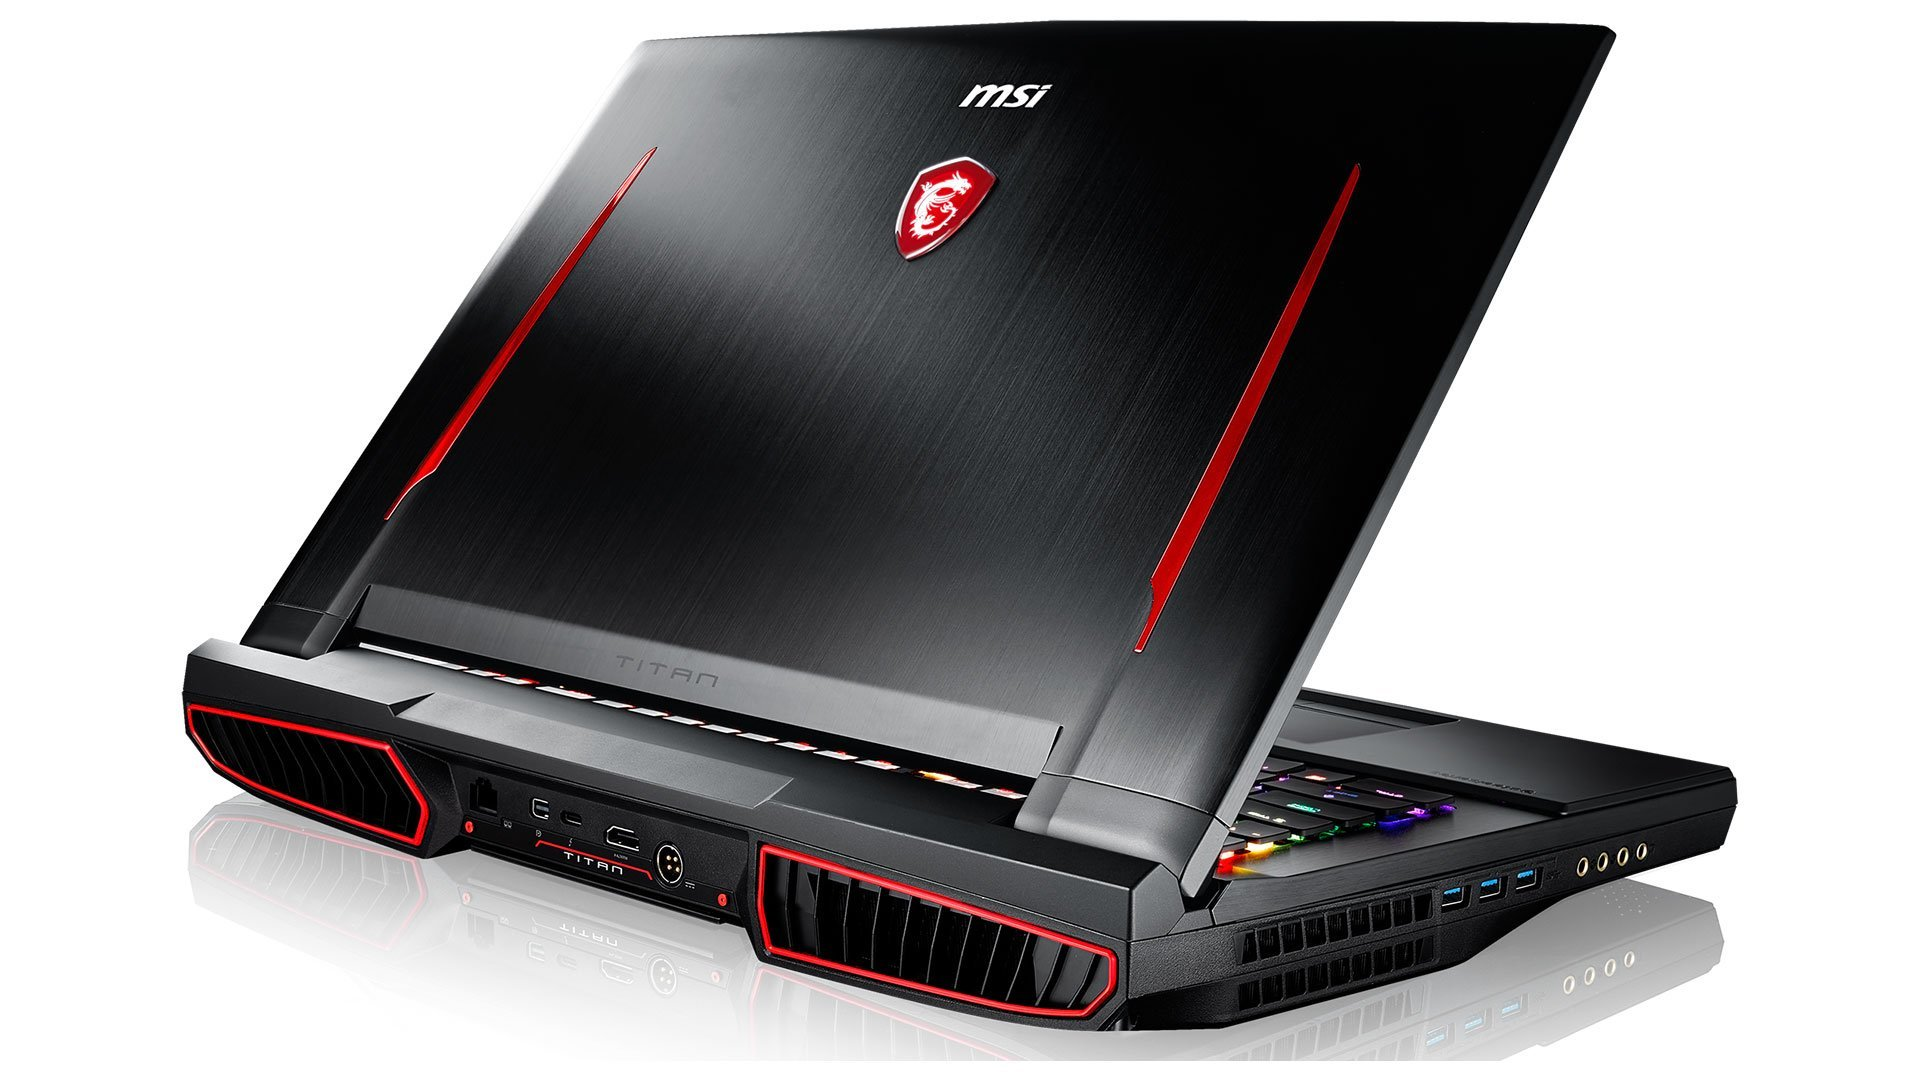 New Gaming Laptops from MSI with Intel 8th Generation Processors 26